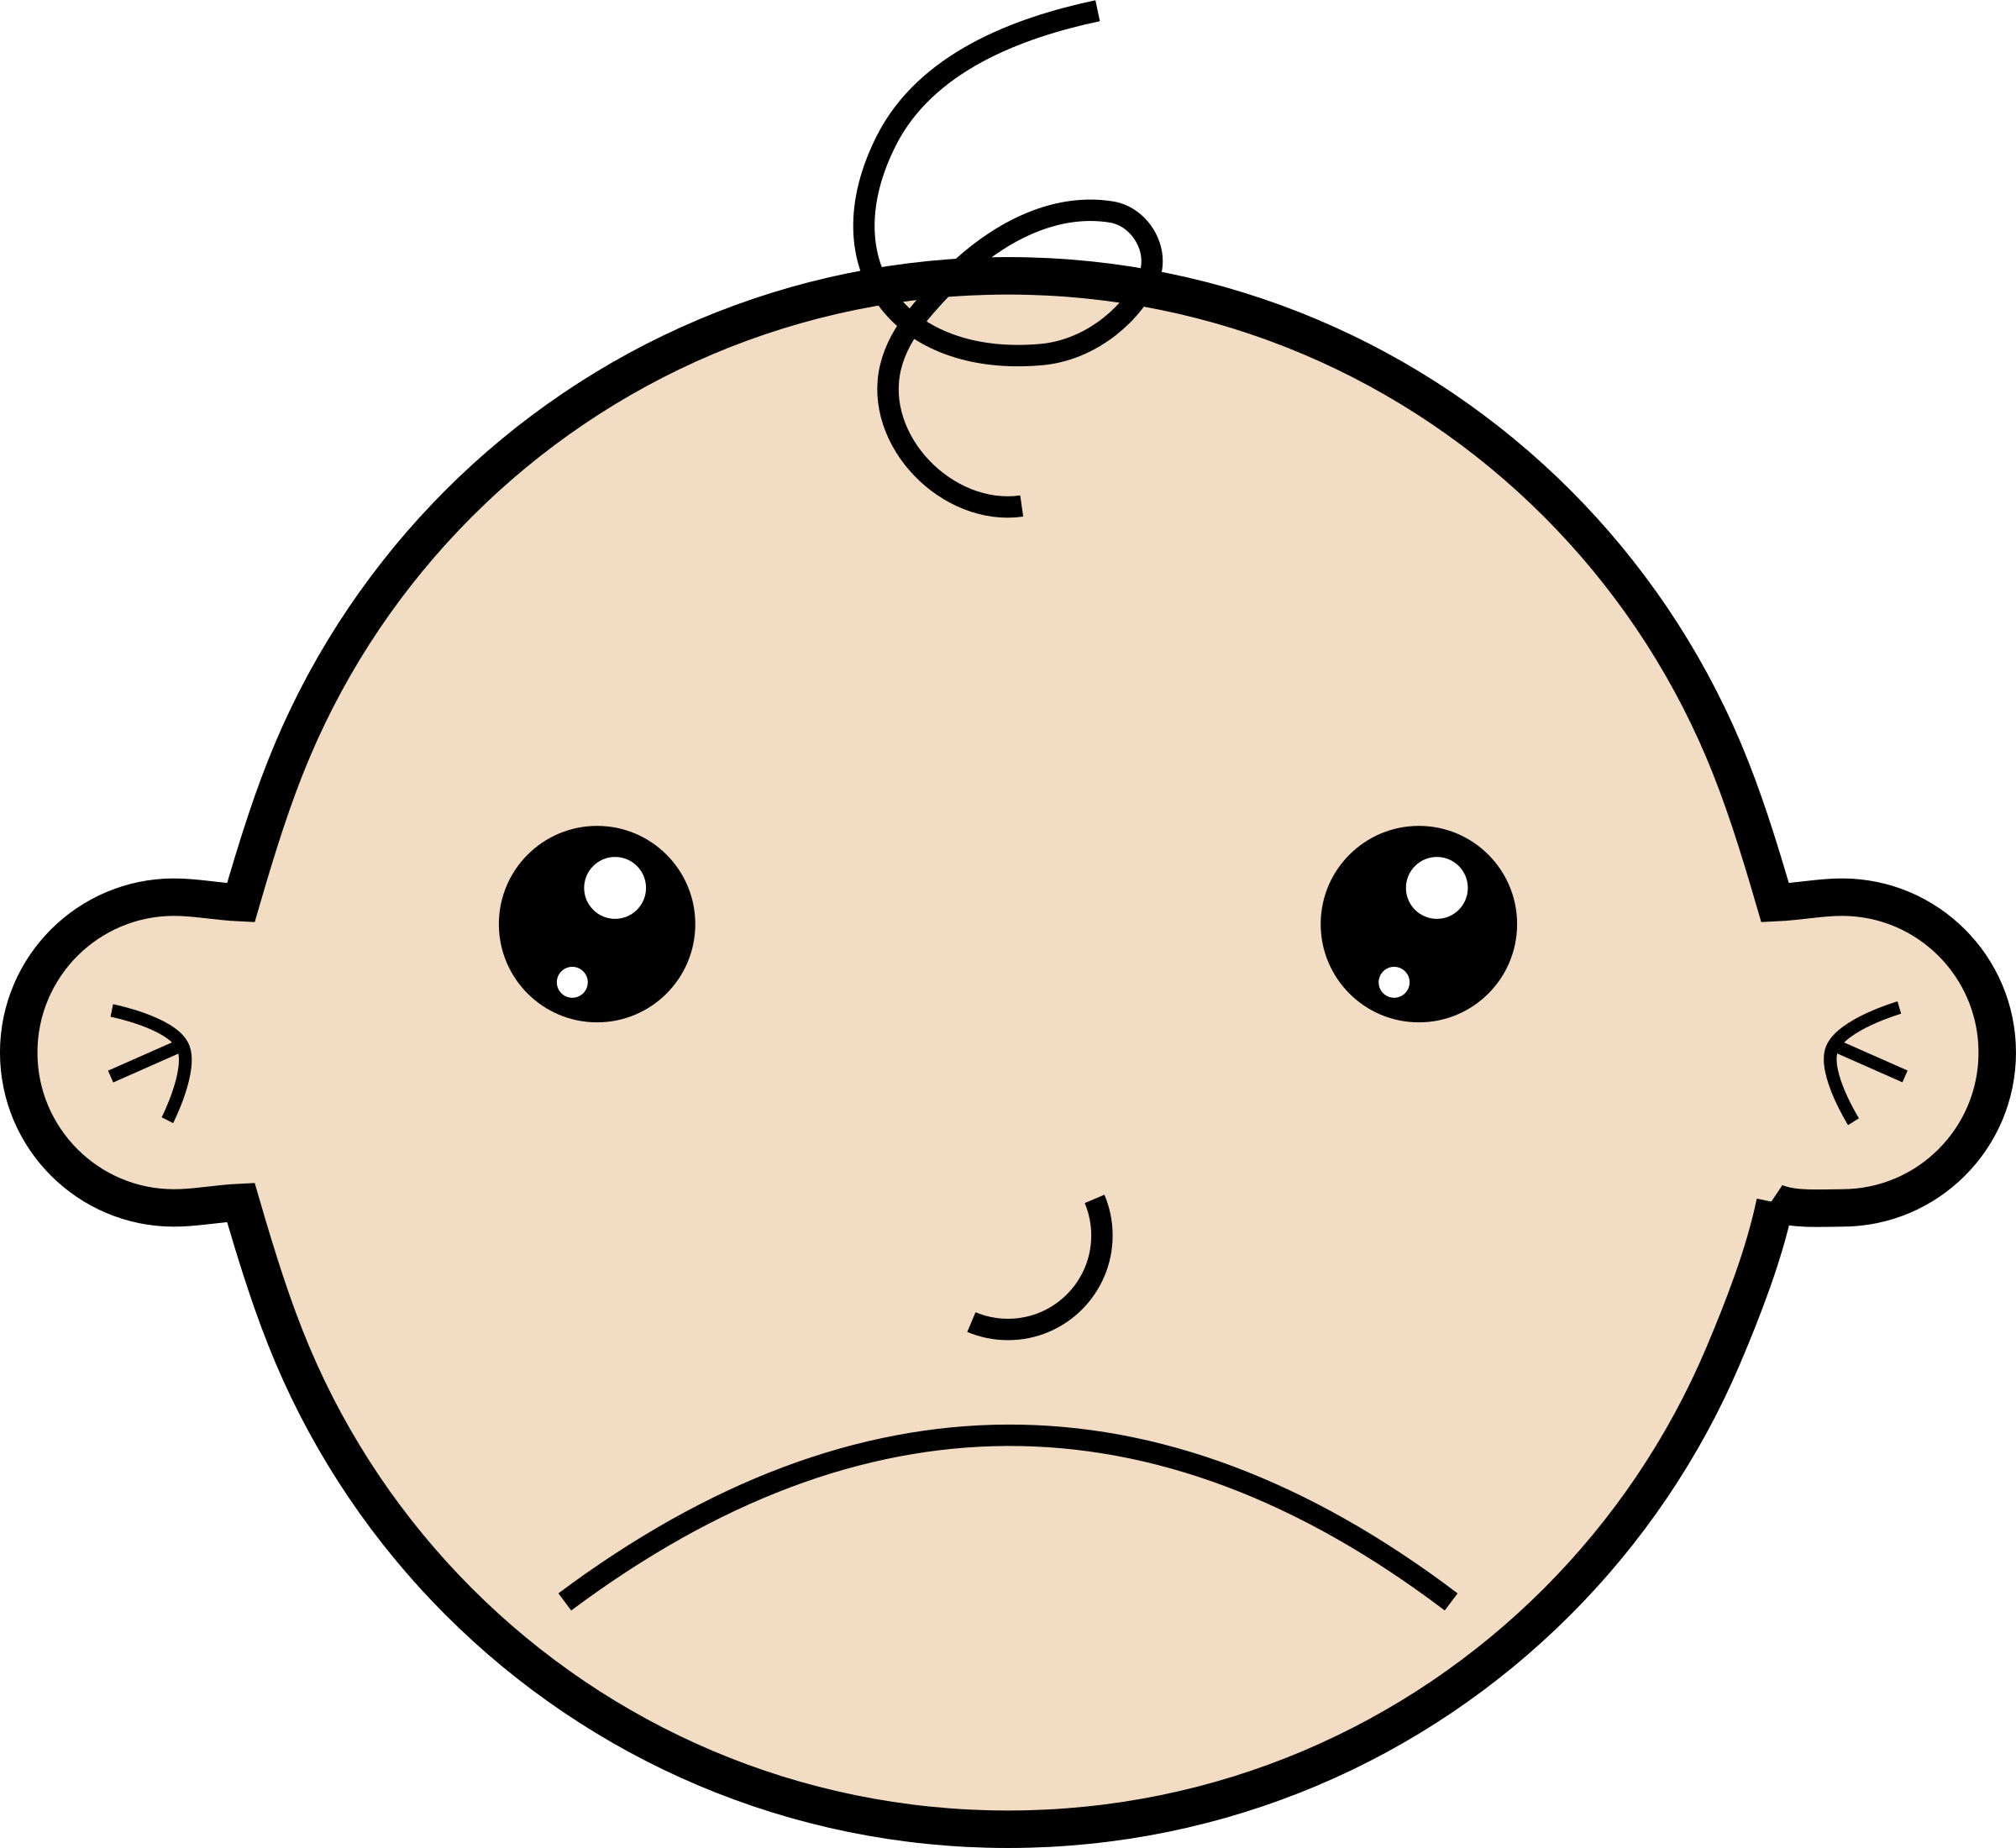 Infant clipart baby face, Infant baby face Transparent FREE.